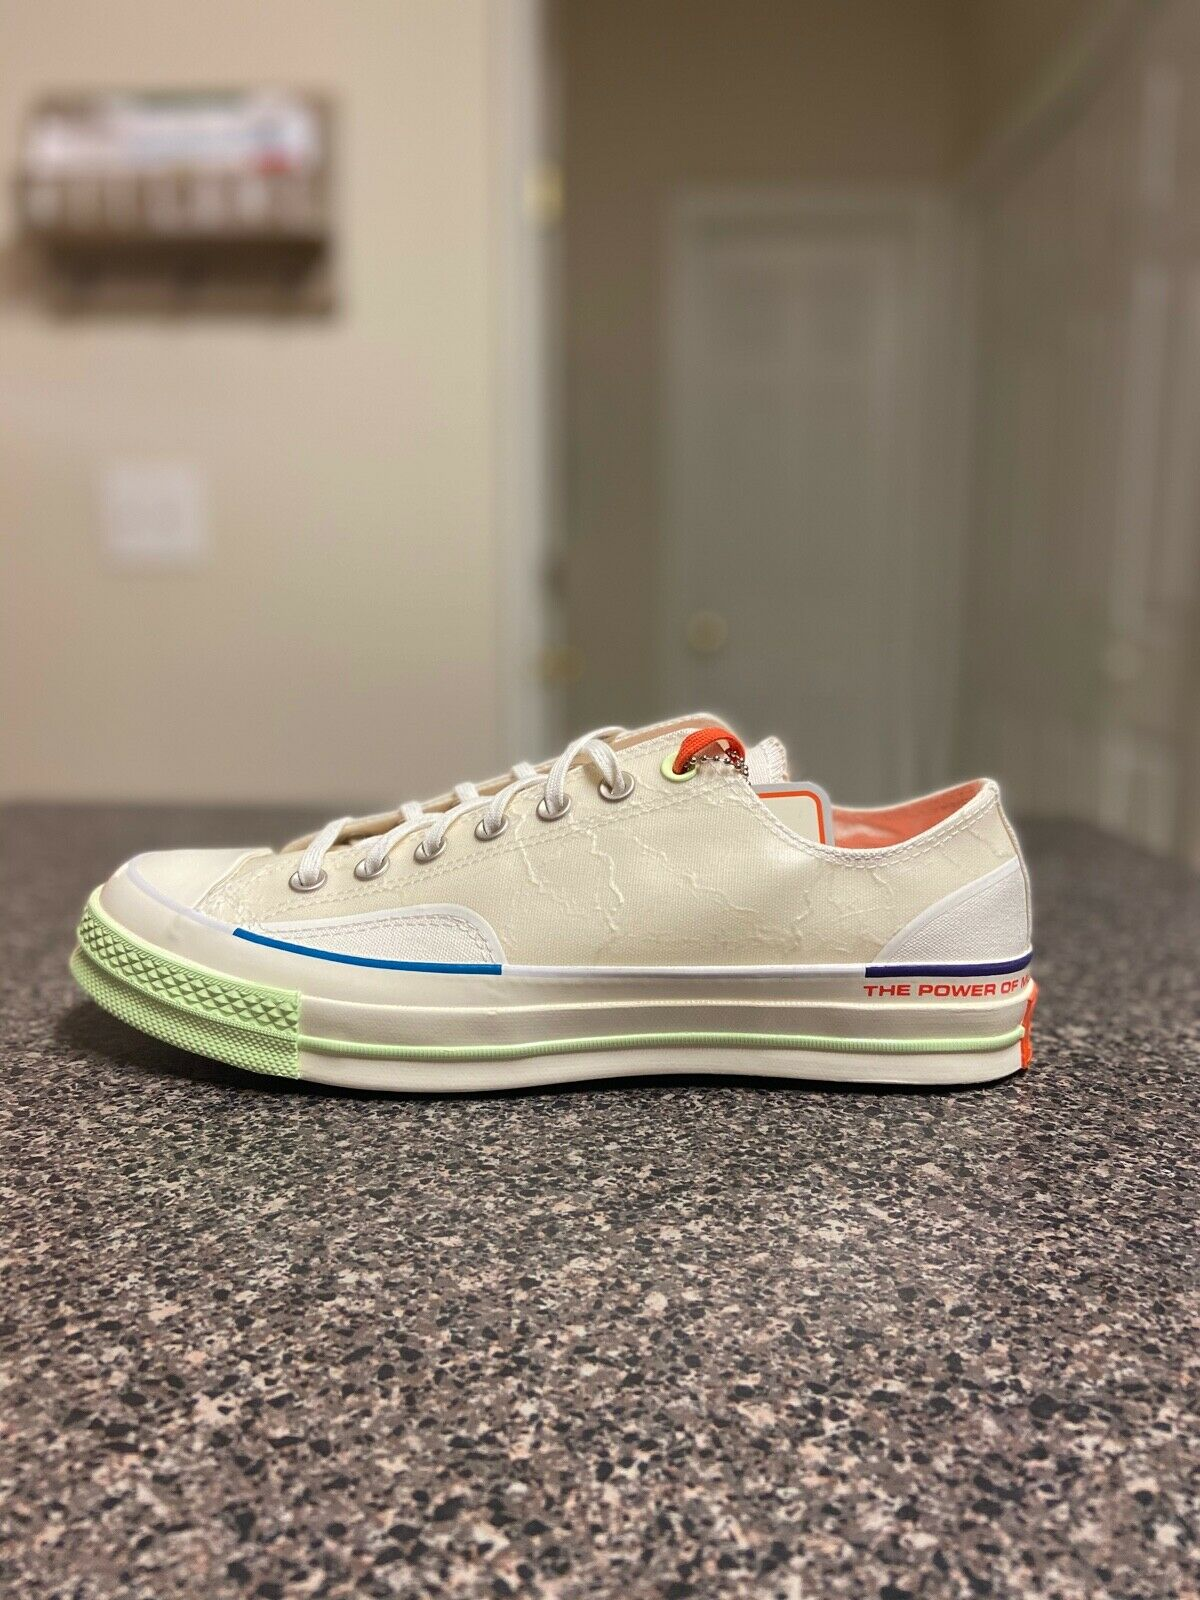 Converse Chuck Taylor All Star 70s Ox Pigalle White